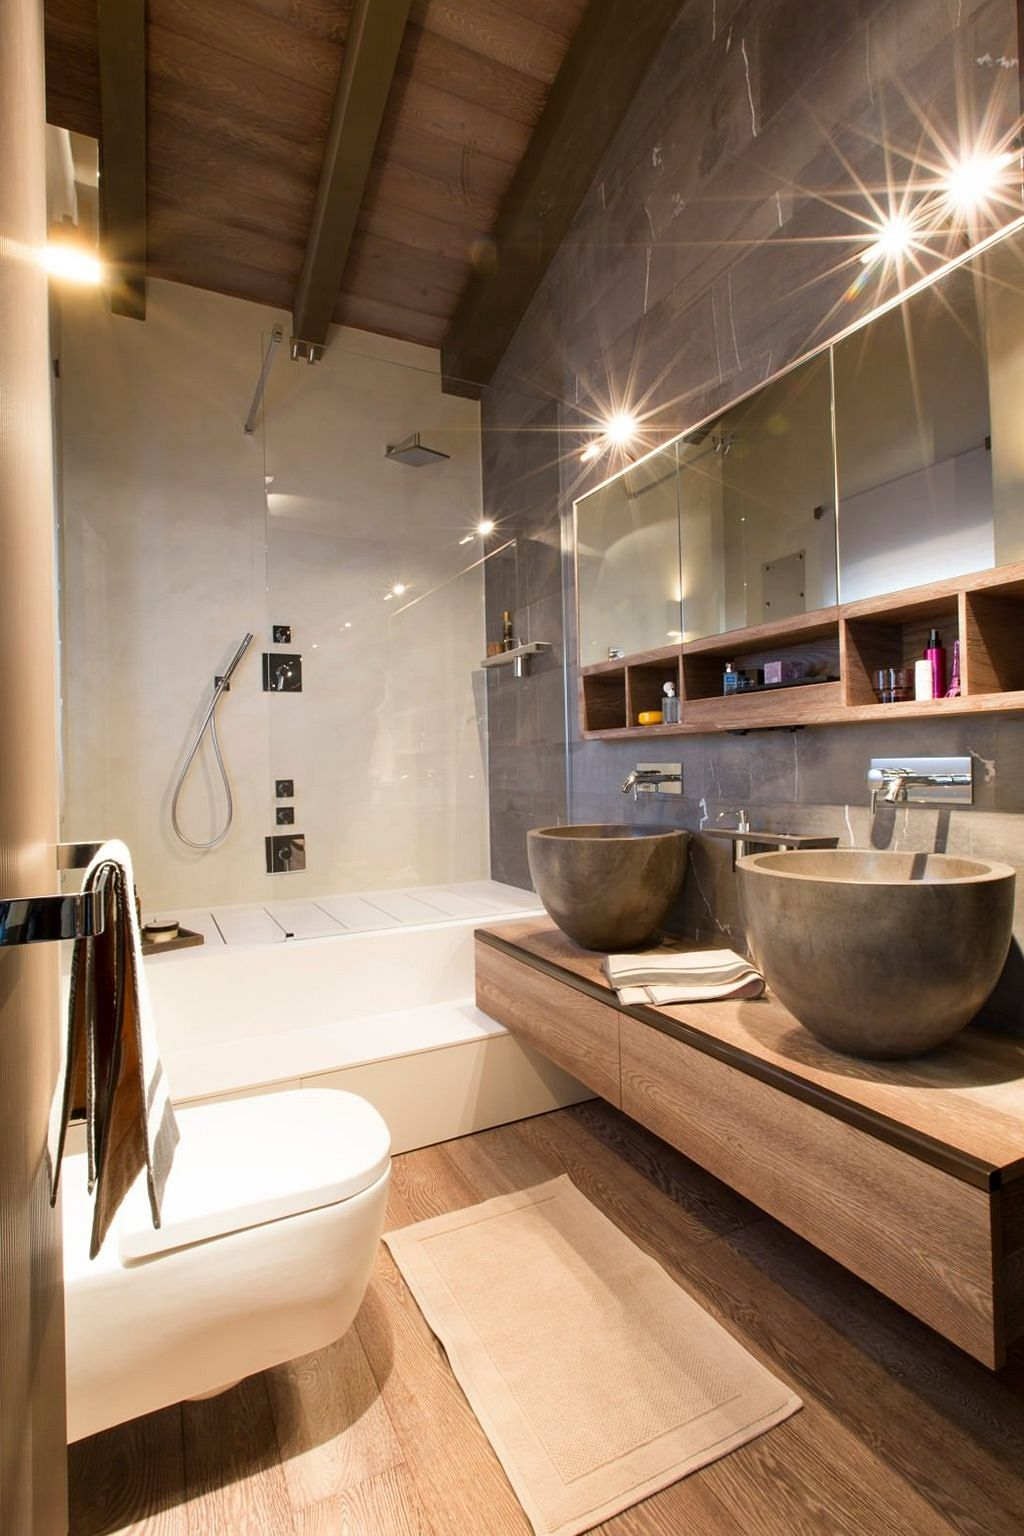 image gallery modern apartment in switzerland - Bathroom Design Ideas For Apartments